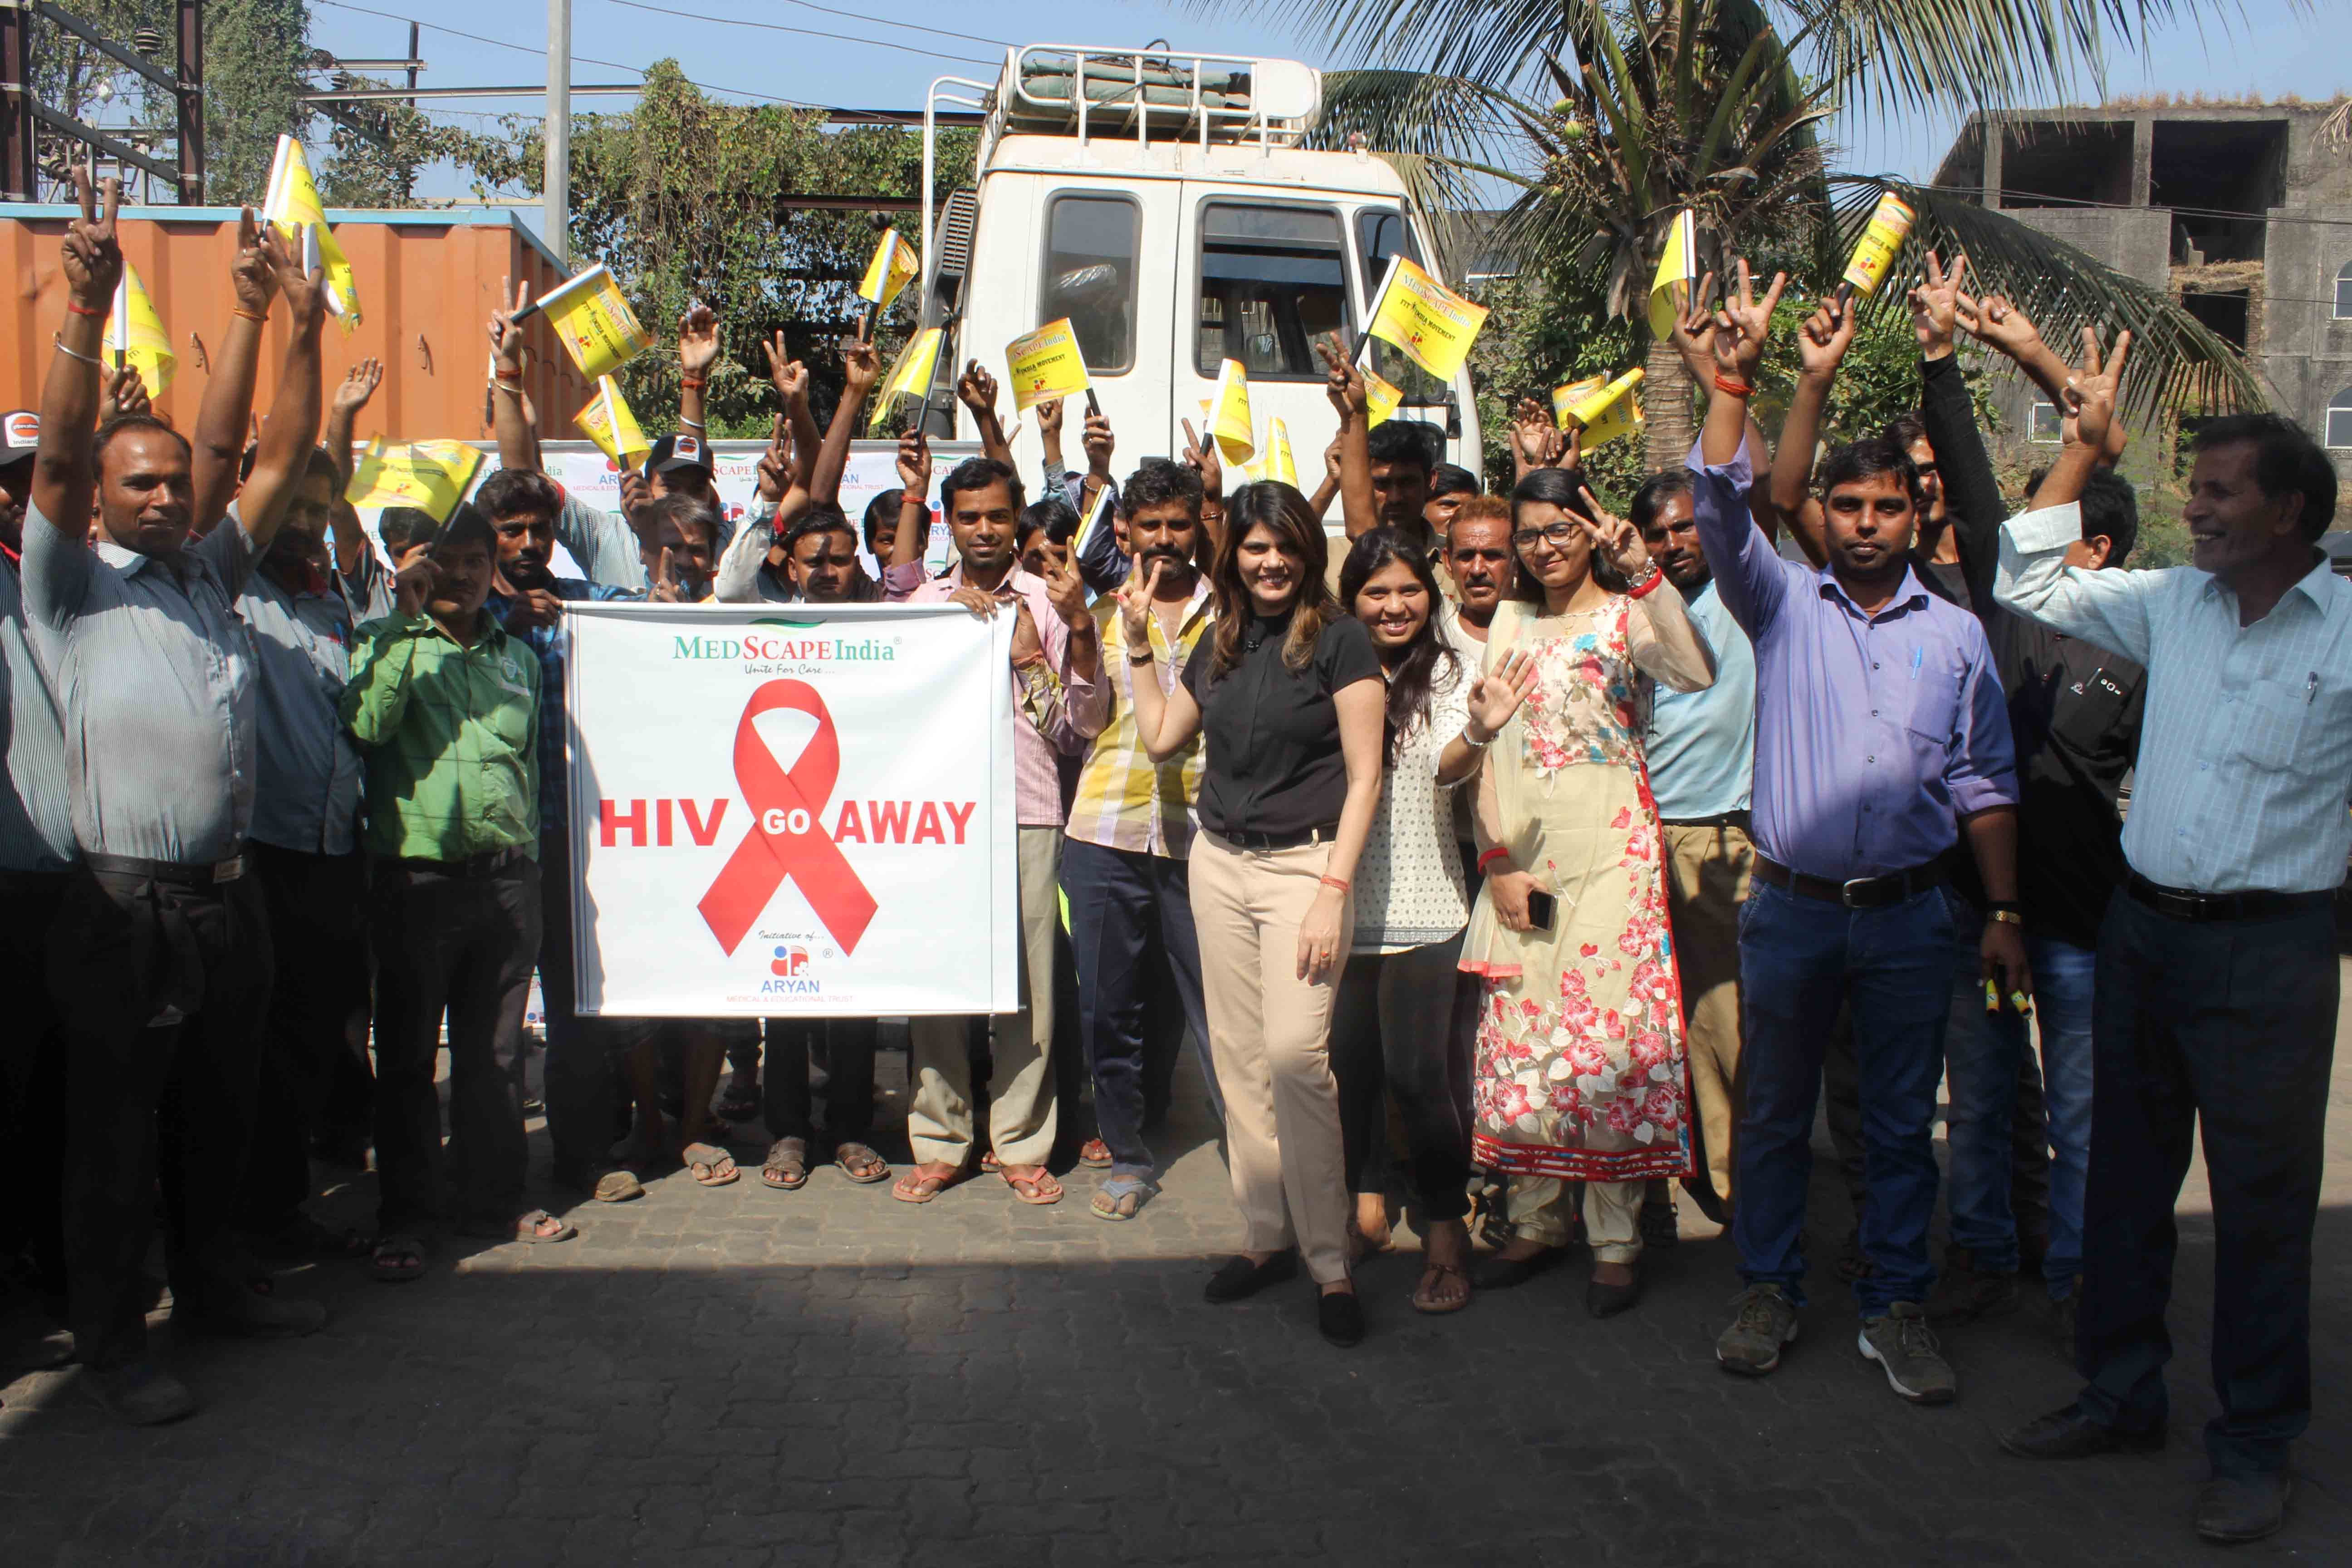 MEDSCAPEINDIA, SHINES, HIV AWARENESS, CAMPAIGNS